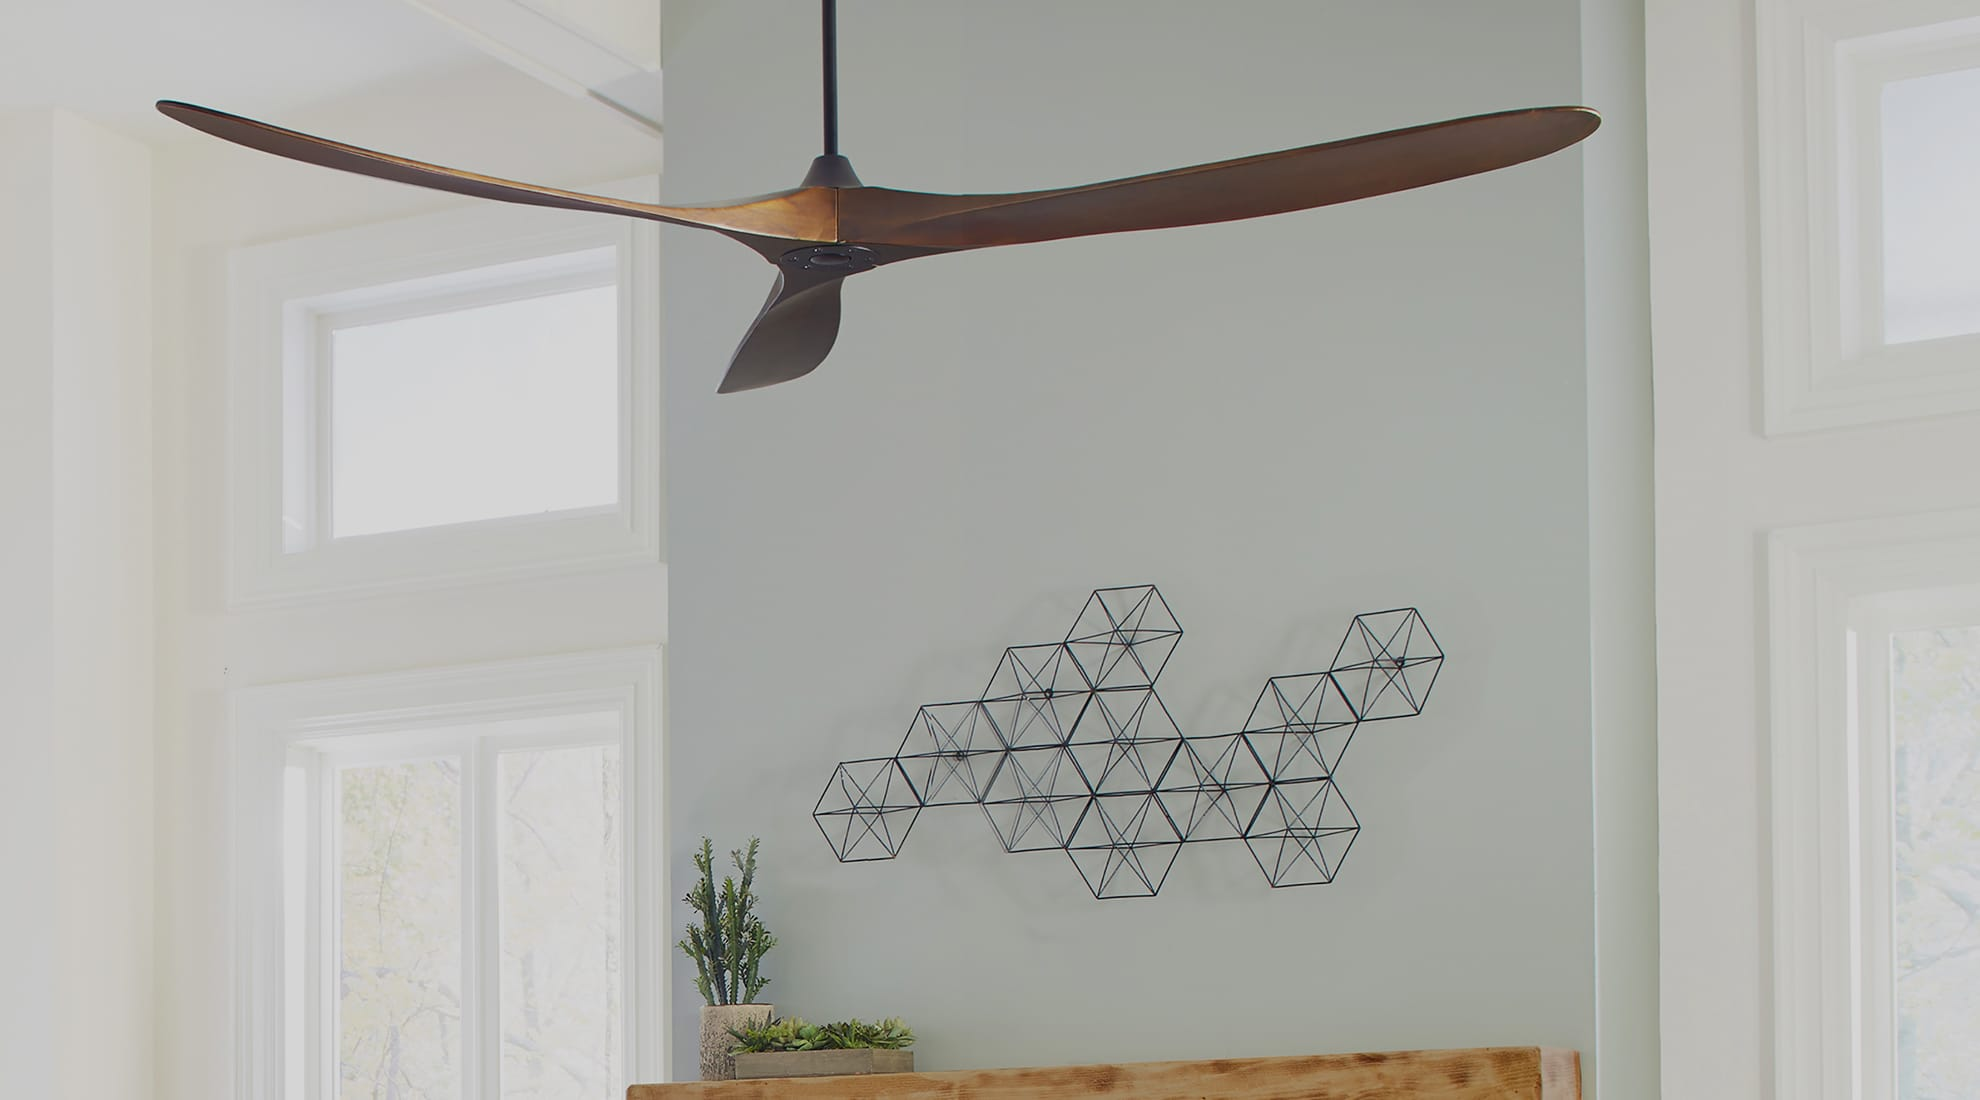 Ceiling fan sizes ceiling fan size guide at lumens fan buyers guide choosing the right ceiling fan size aloadofball Gallery